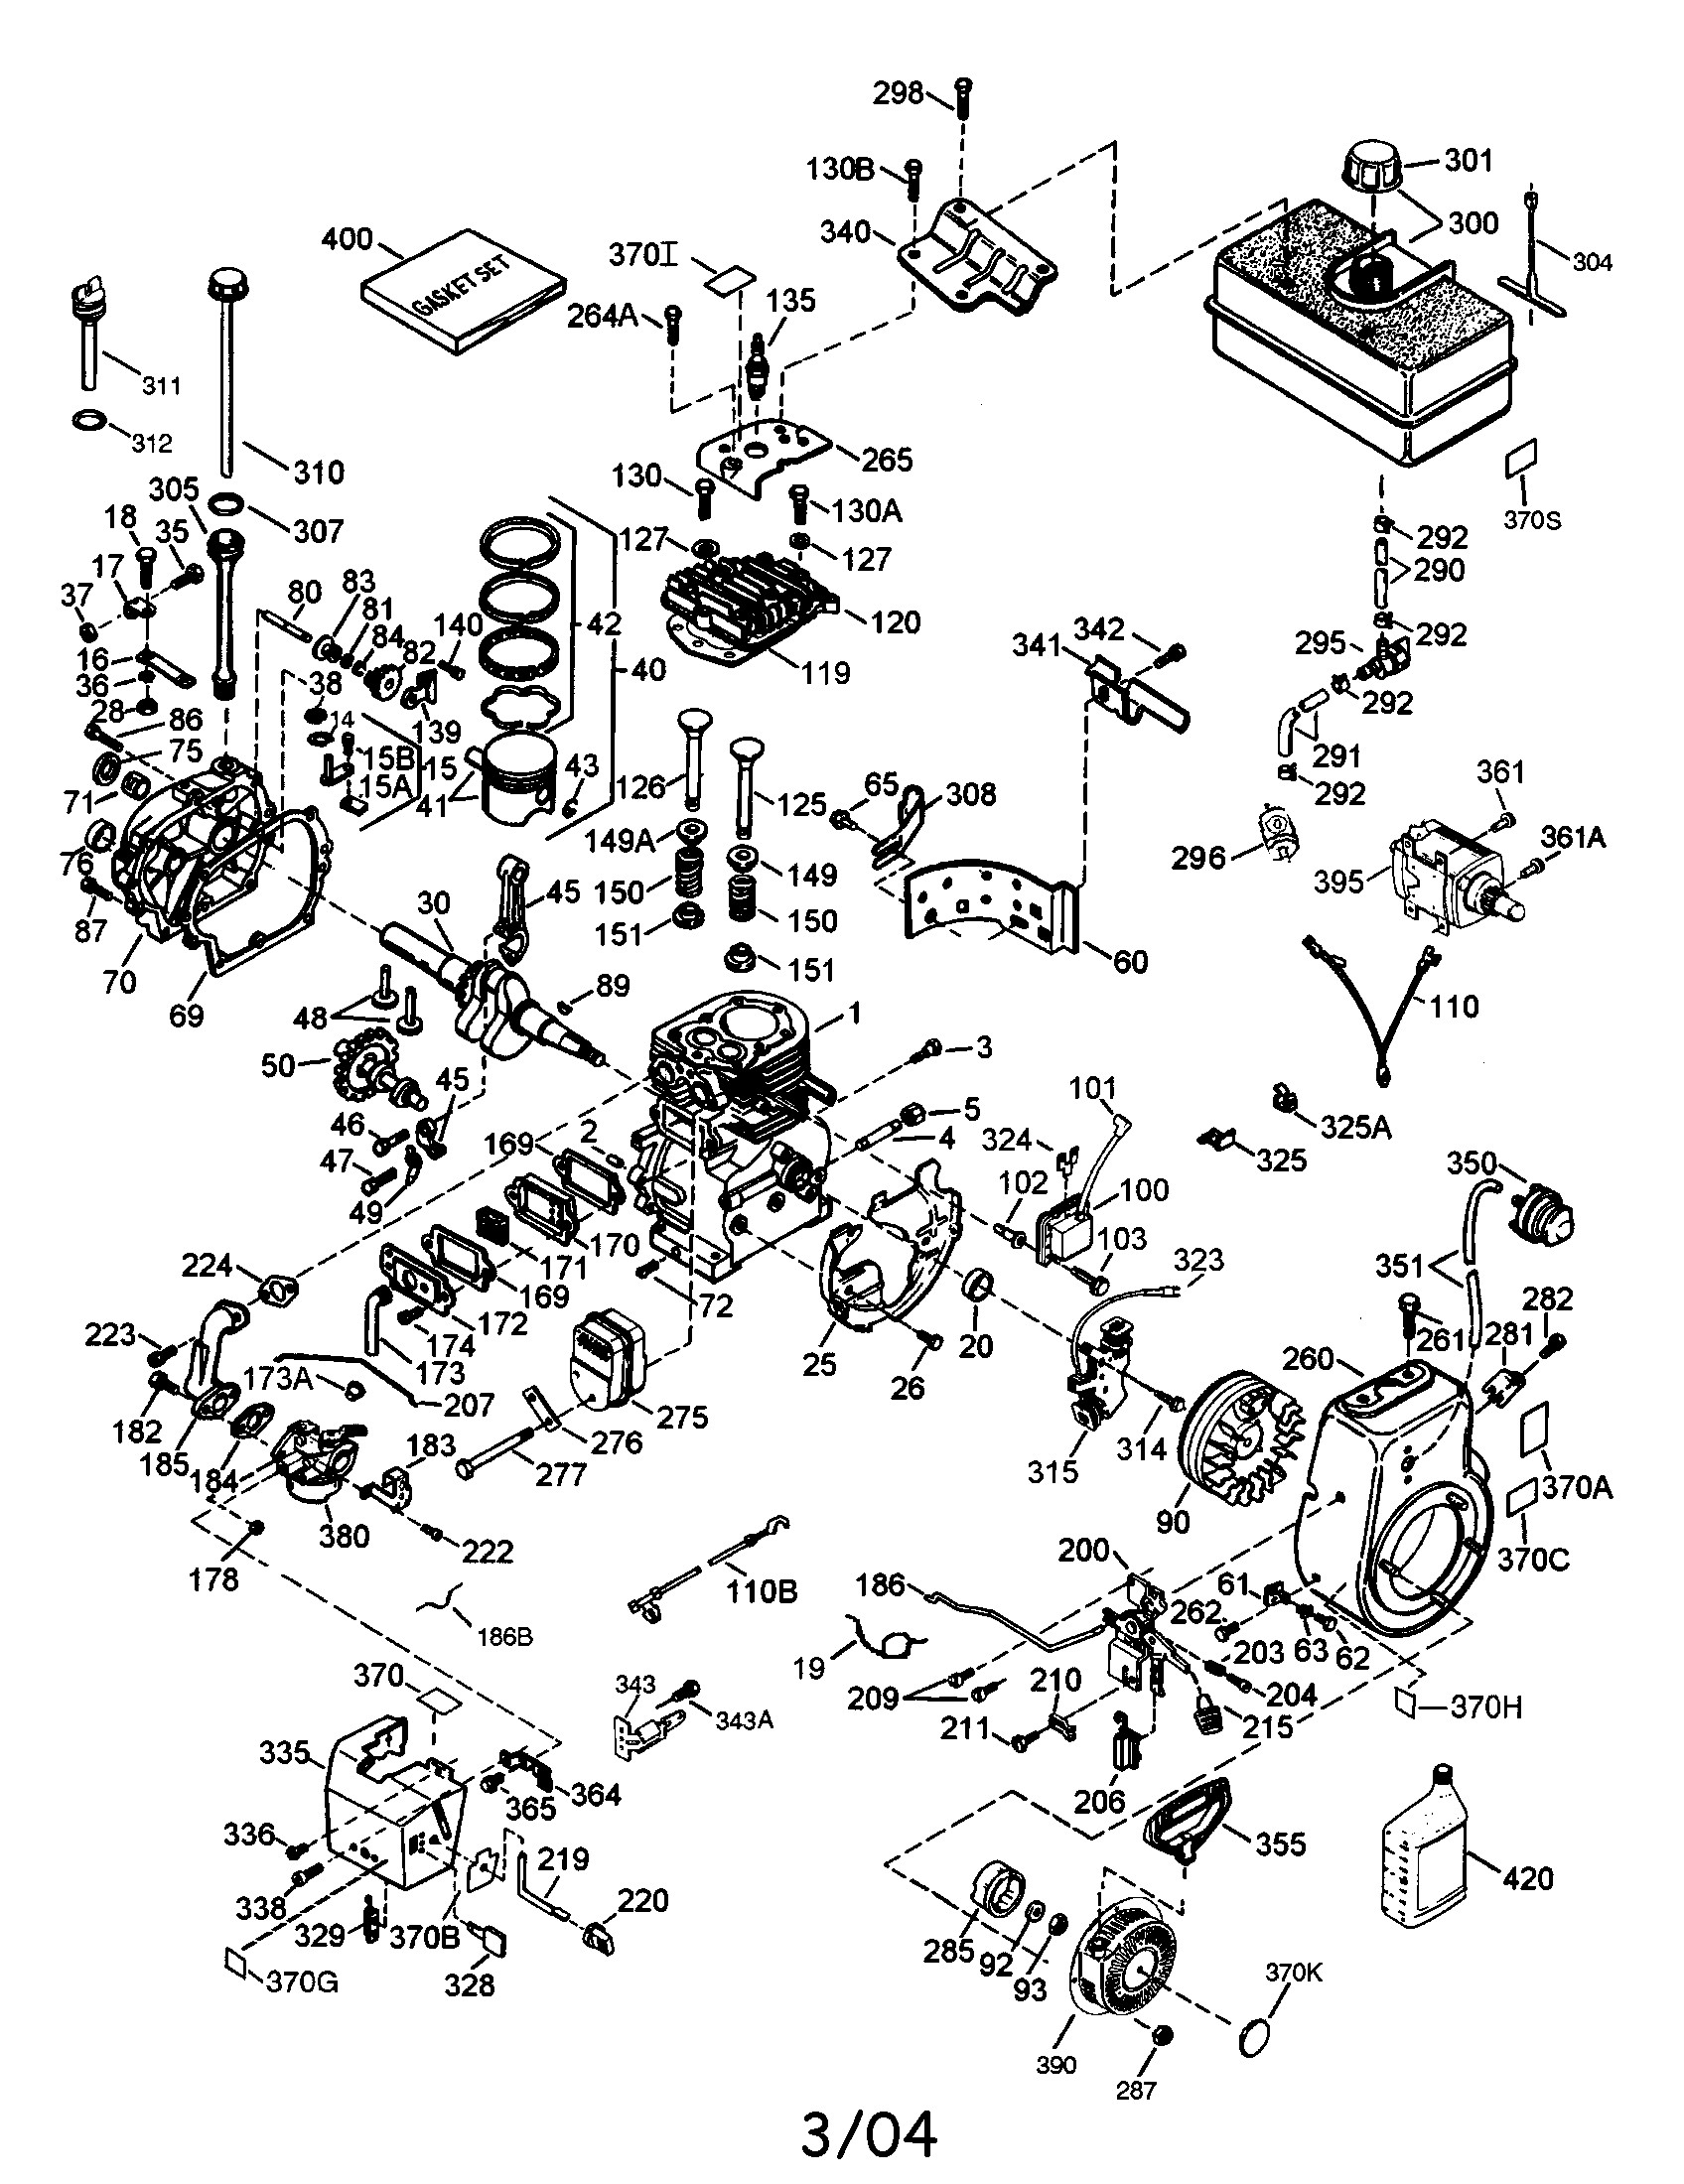 Carburetor Diagram for Tecumseh Engine Tecumseh Model Hmsk85 C Engine Genuine Parts Of Carburetor Diagram for Tecumseh Engine